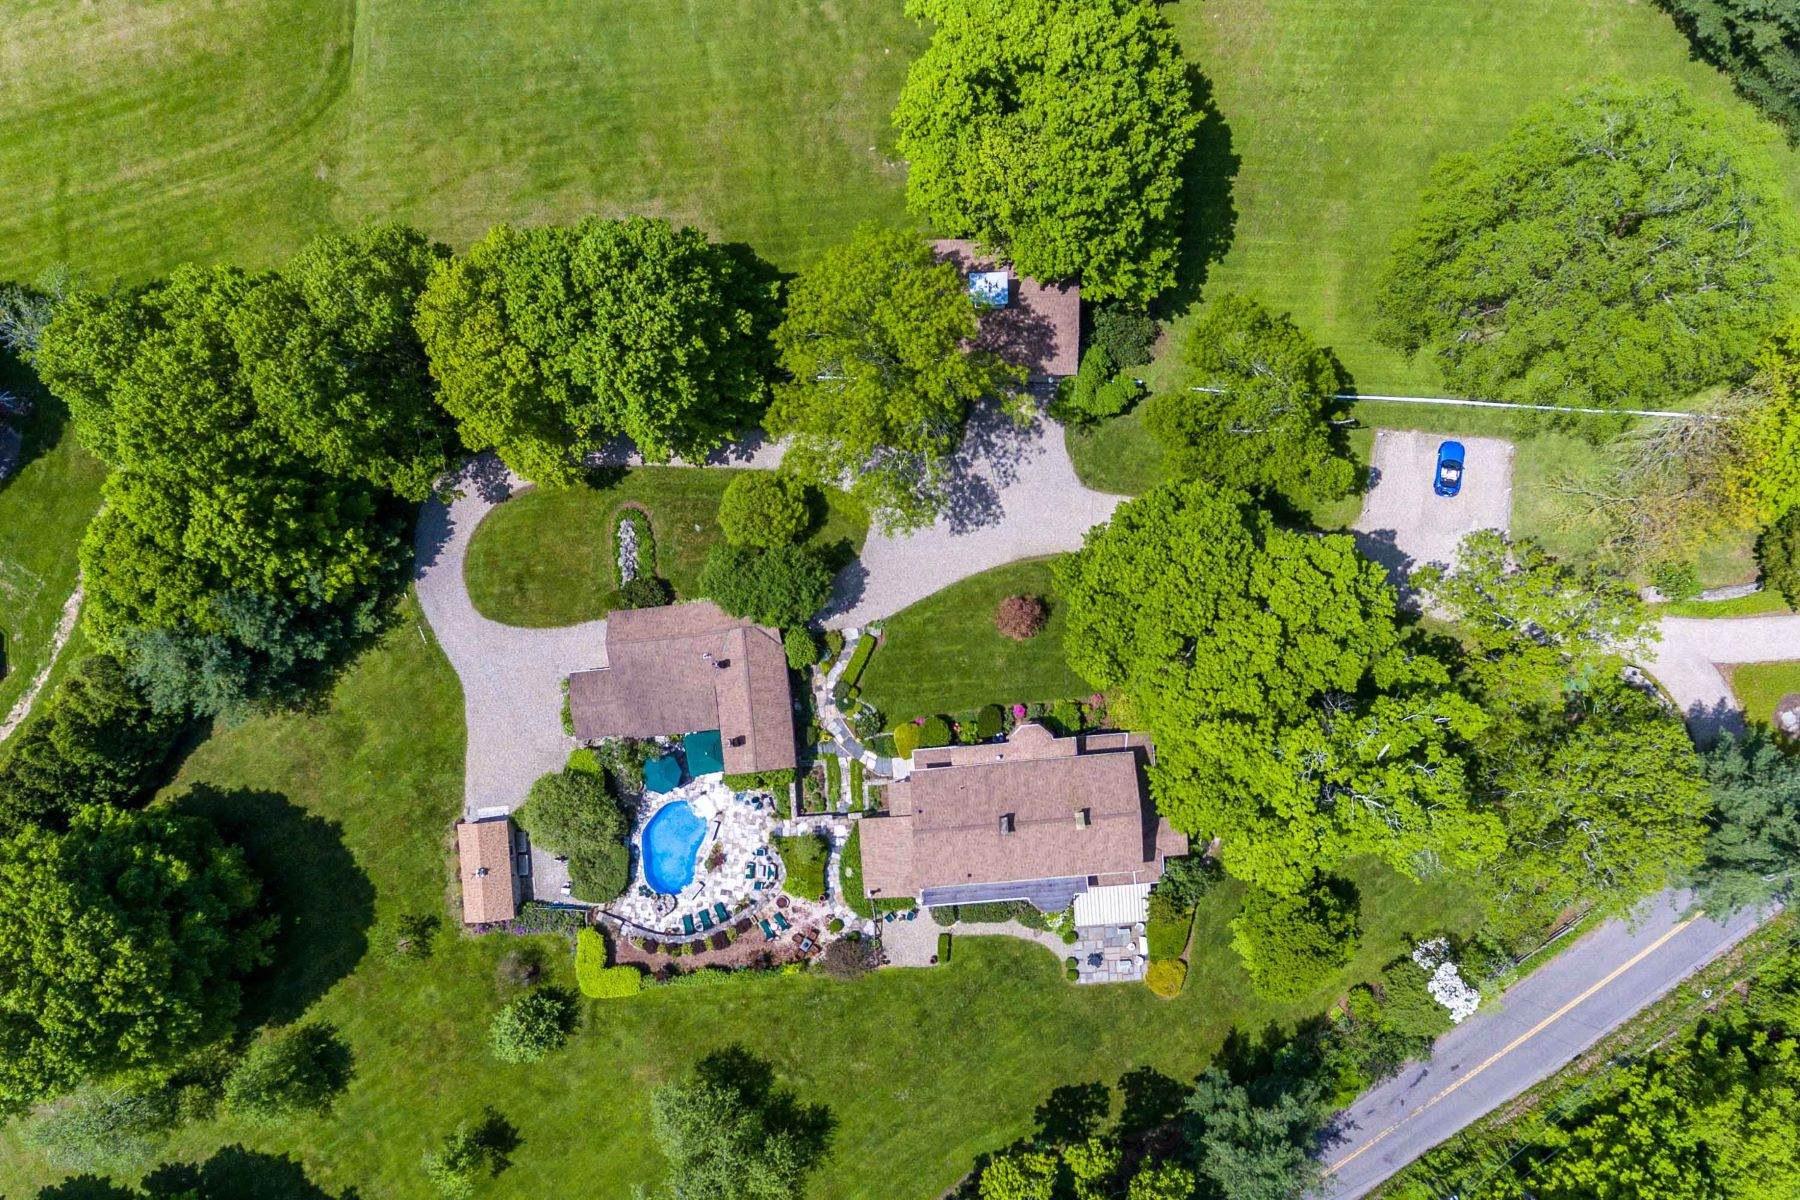 Single Family Homes for Sale at Historic Buckingham Estate with Guest House & Barn 4 Mine Hill Road New Milford, Connecticut 06776 United States